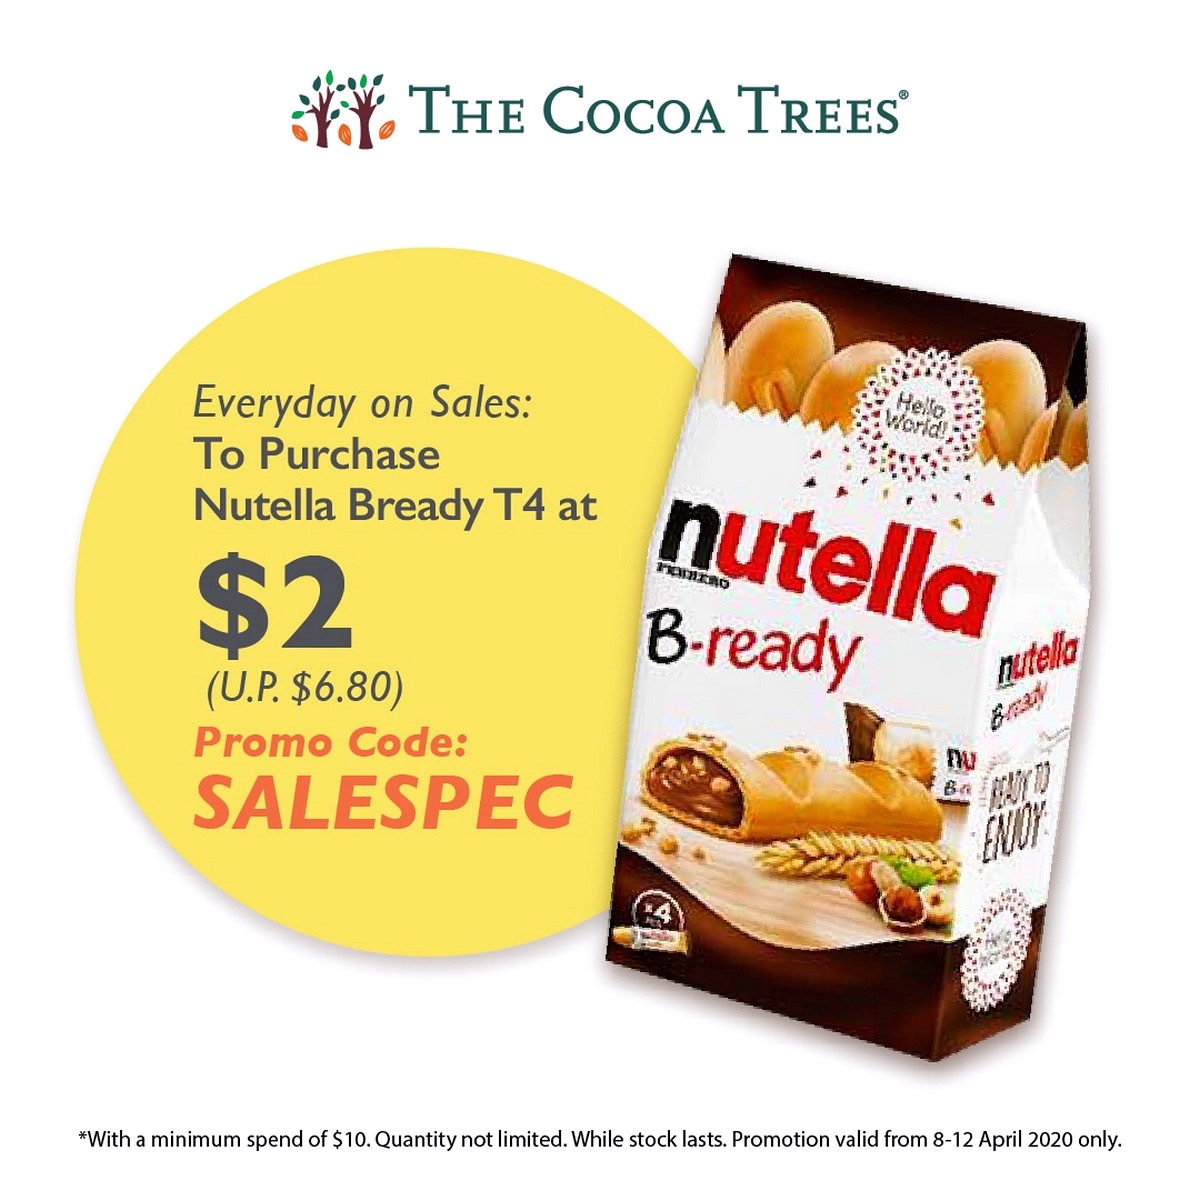 everydayone-sales-1 8 Apr-31 May 2020: The Cocoa Trees Online Mega Sale! Up to 80% off Chocolates & Snacks!